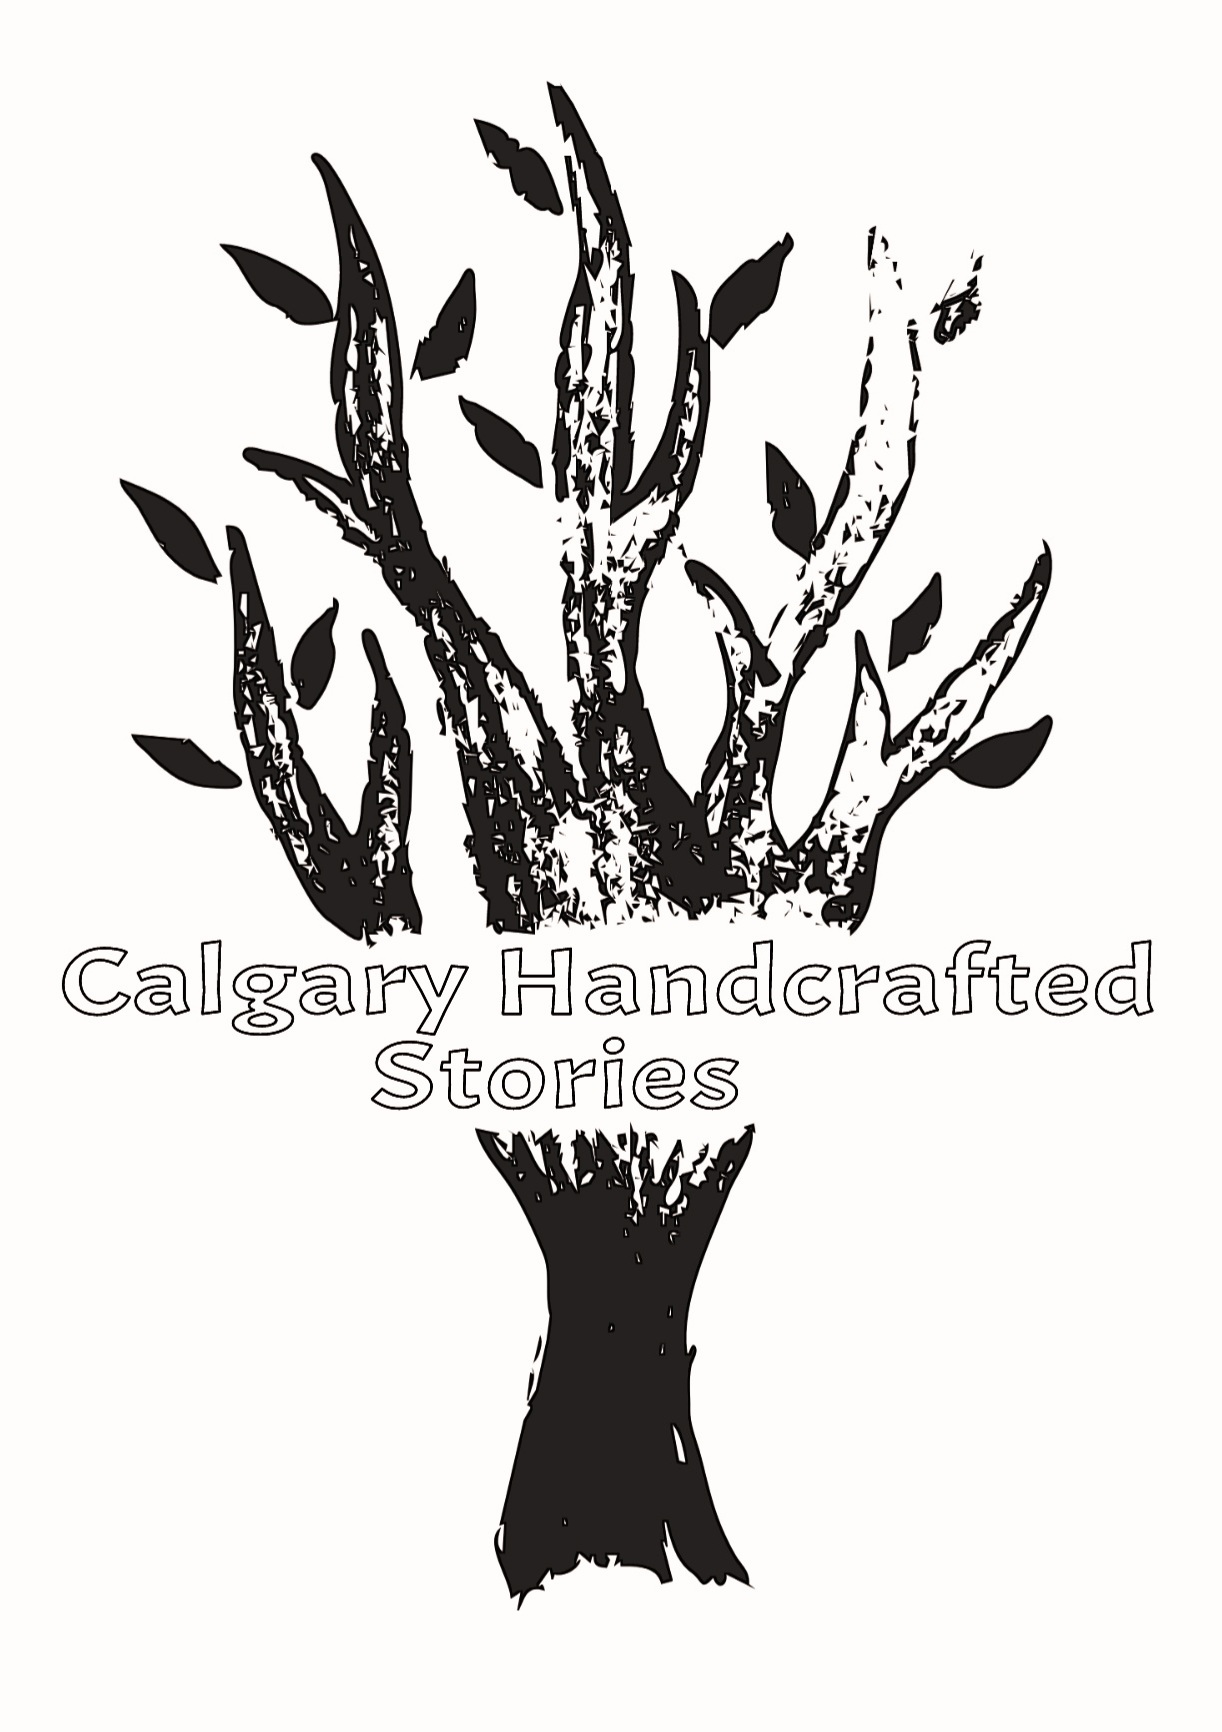 Calgary Handcrafted Stories